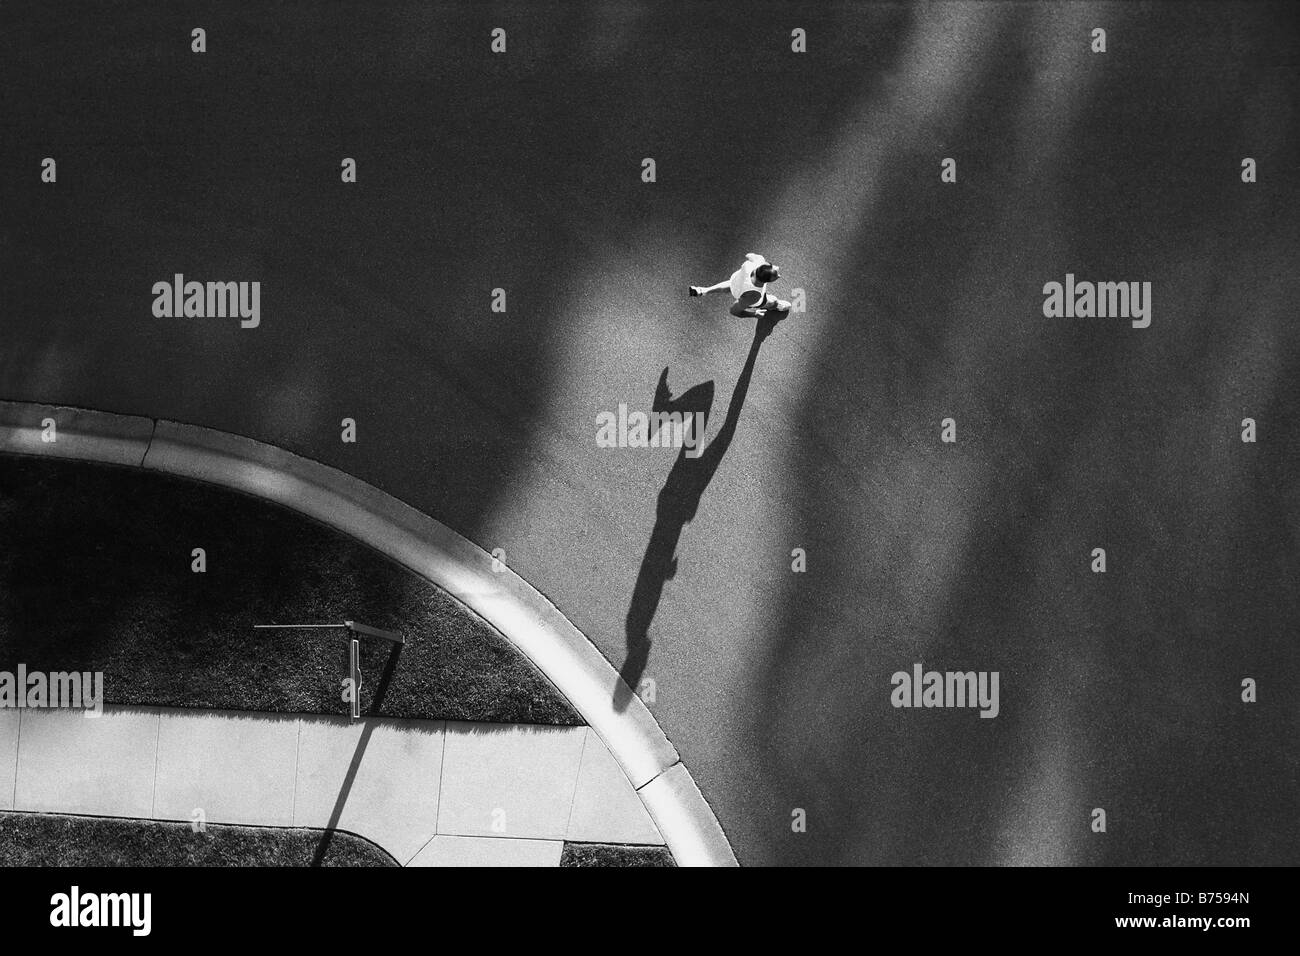 High angle view of a man running - Stock Image